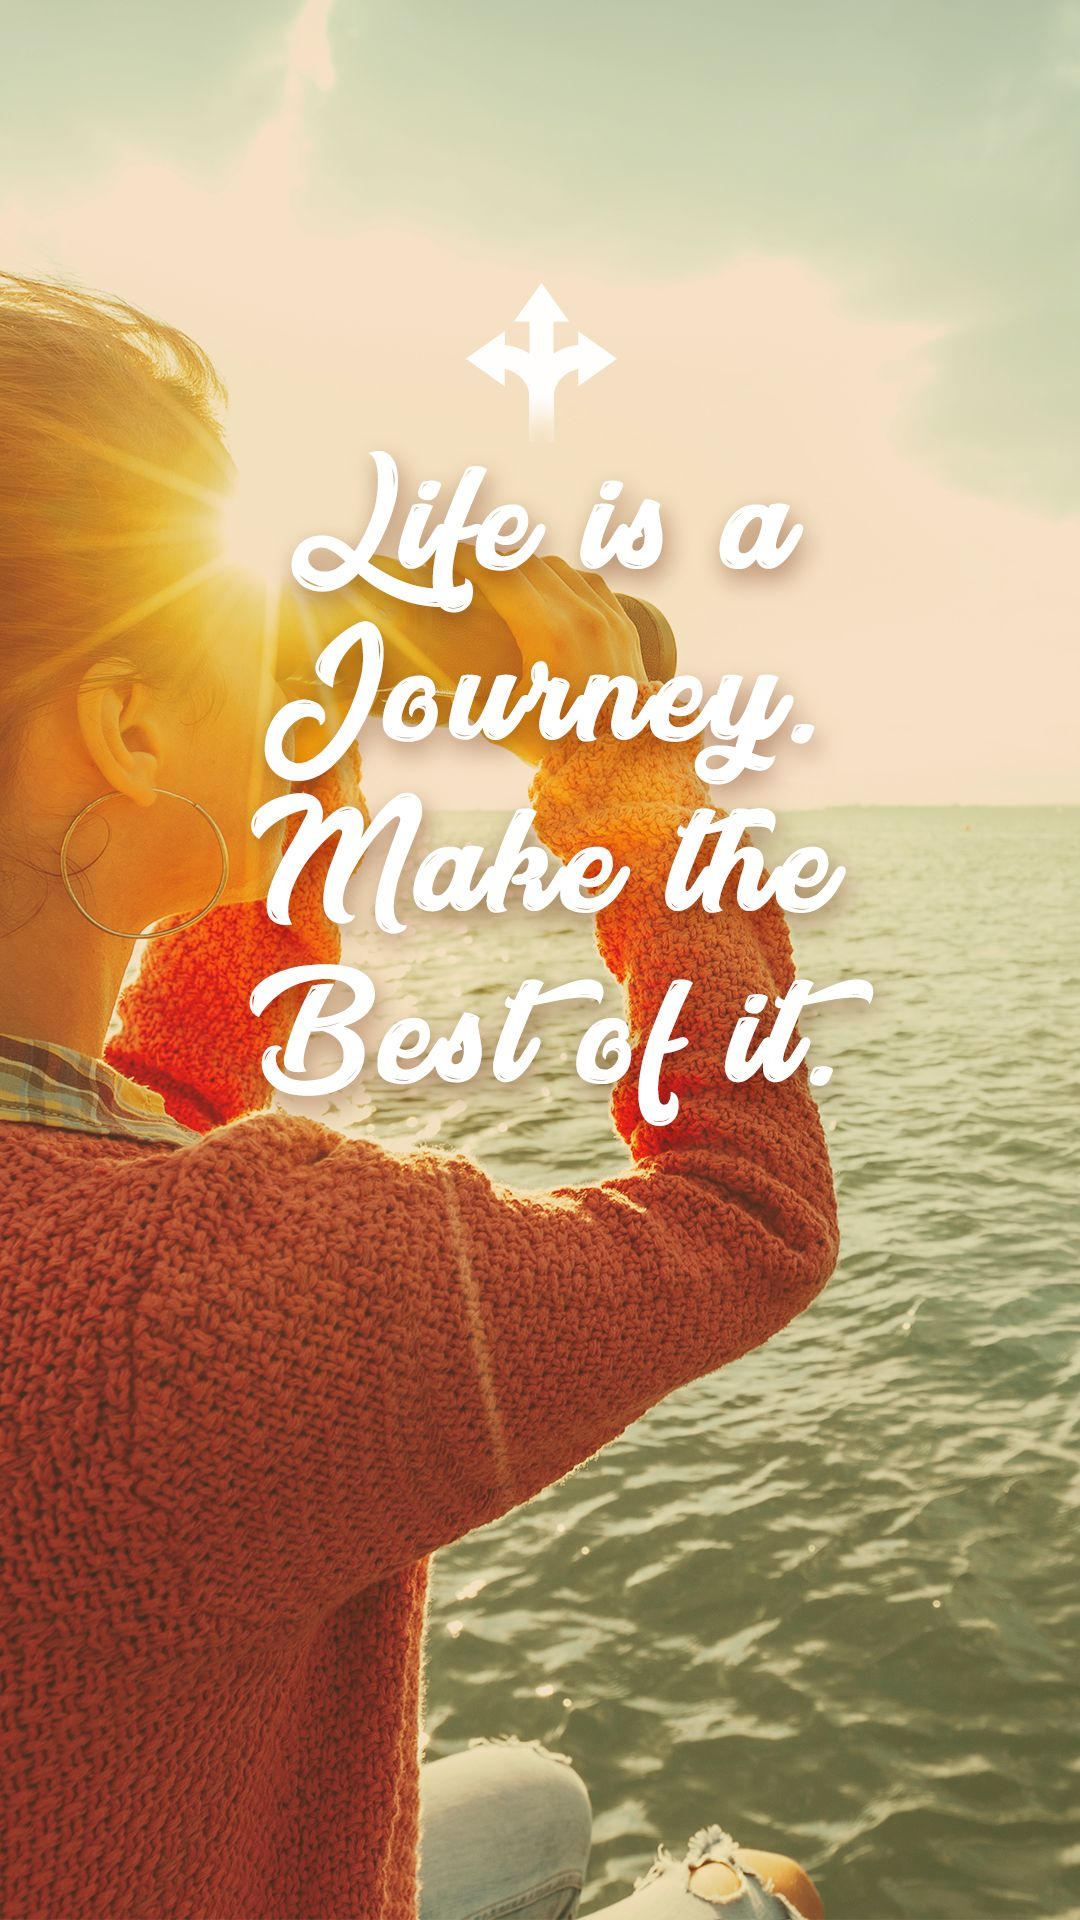 Quotes On New Life Journeys